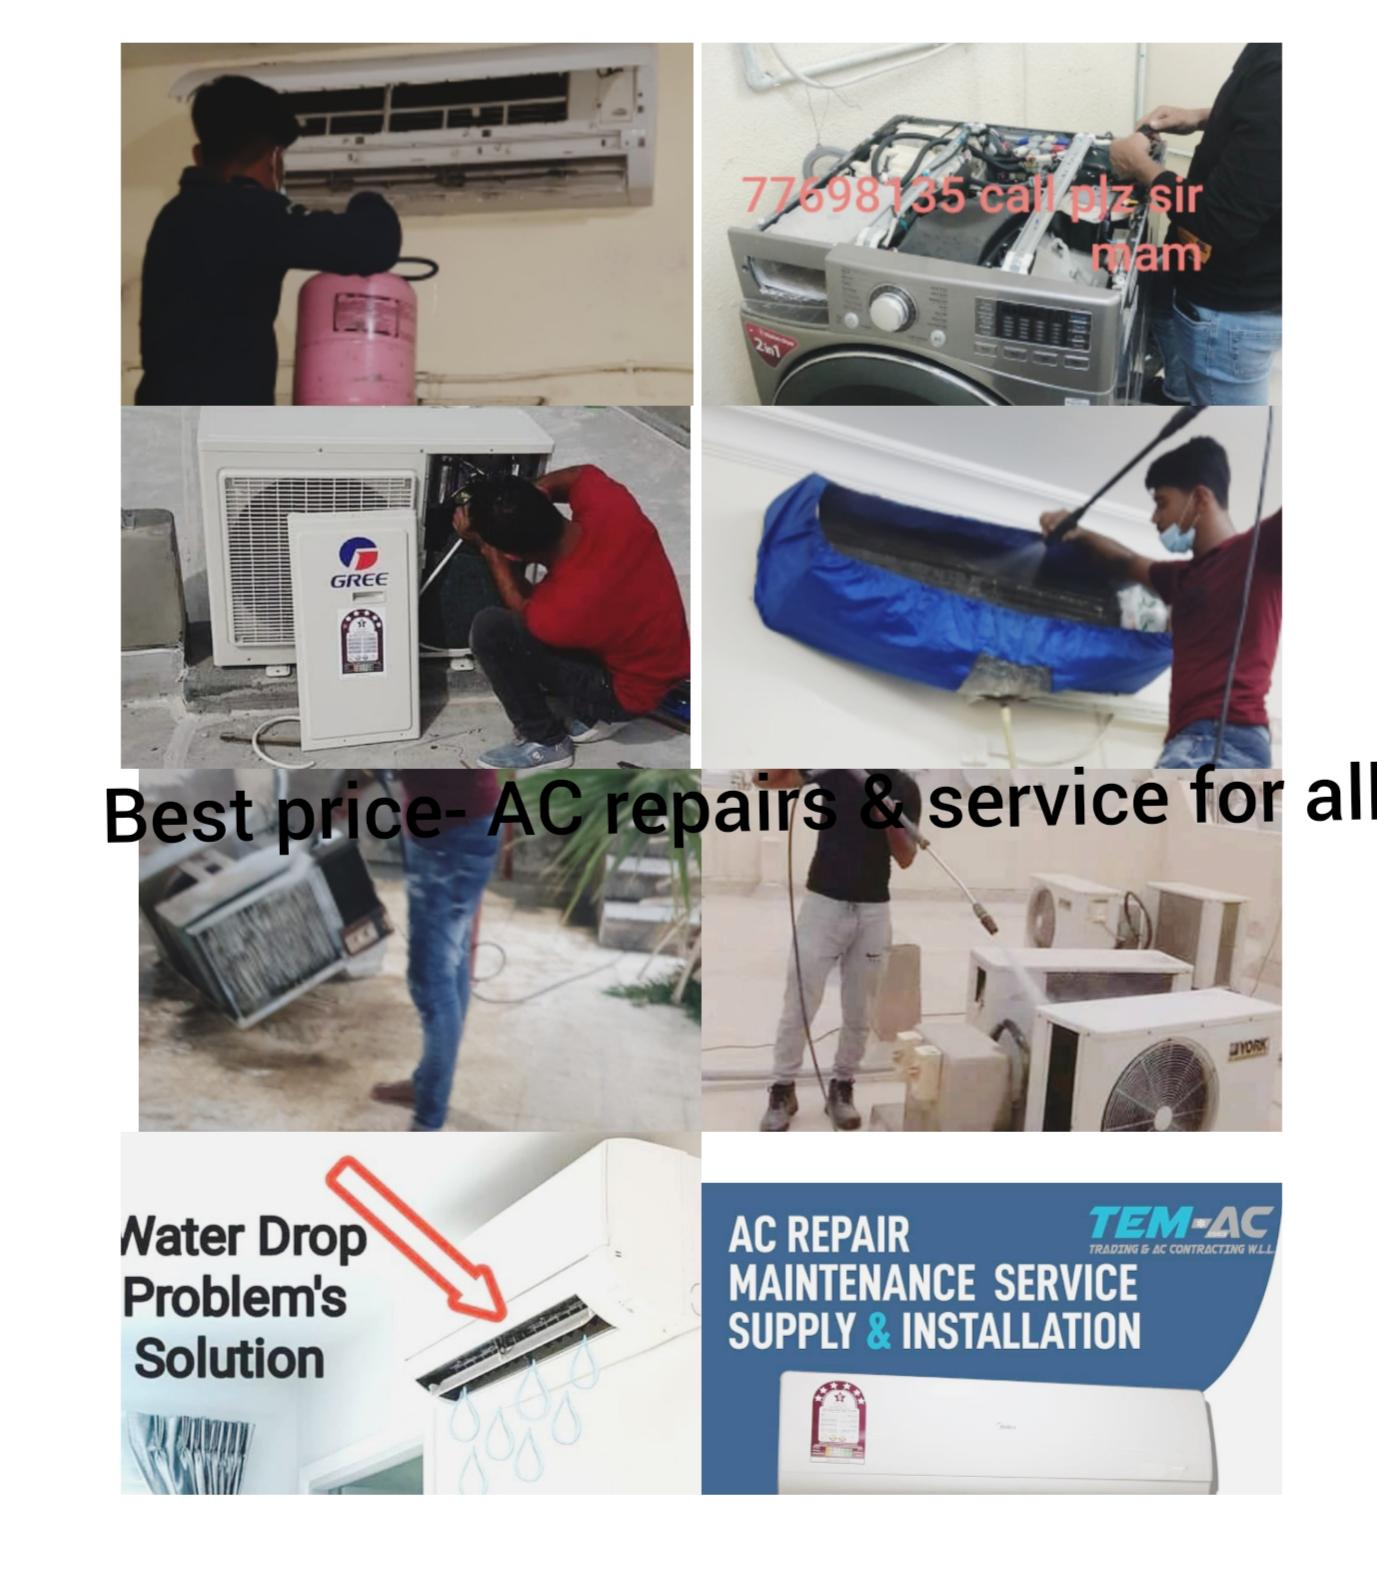 Best price- AC repairs & service for all types of